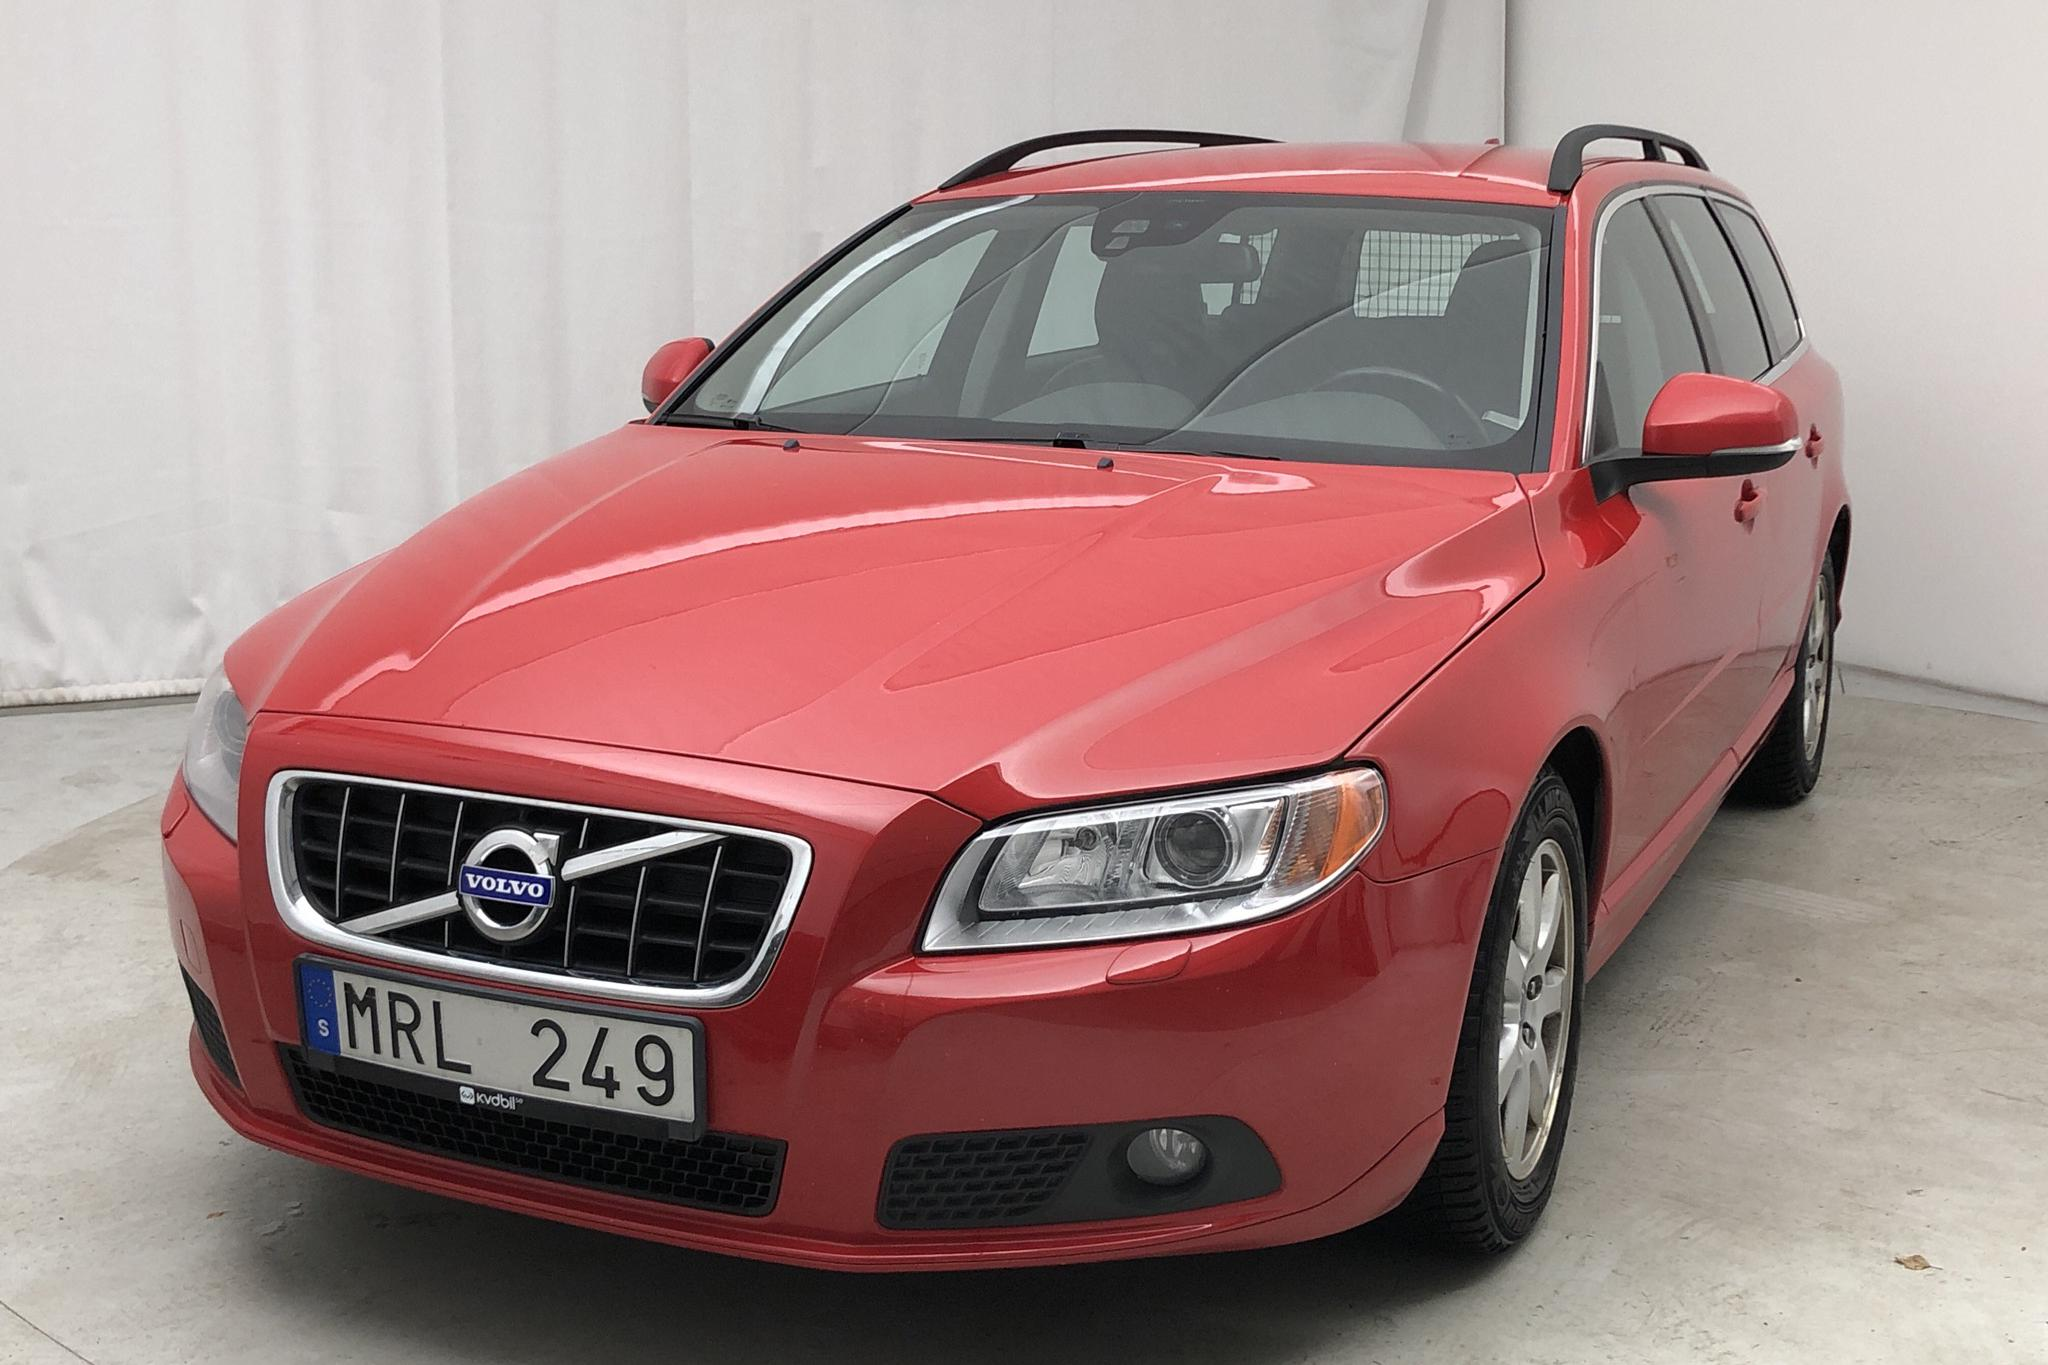 Volvo V70 II 1.6D DRIVe (115hk) - 265 580 km - Manual - red - 2012